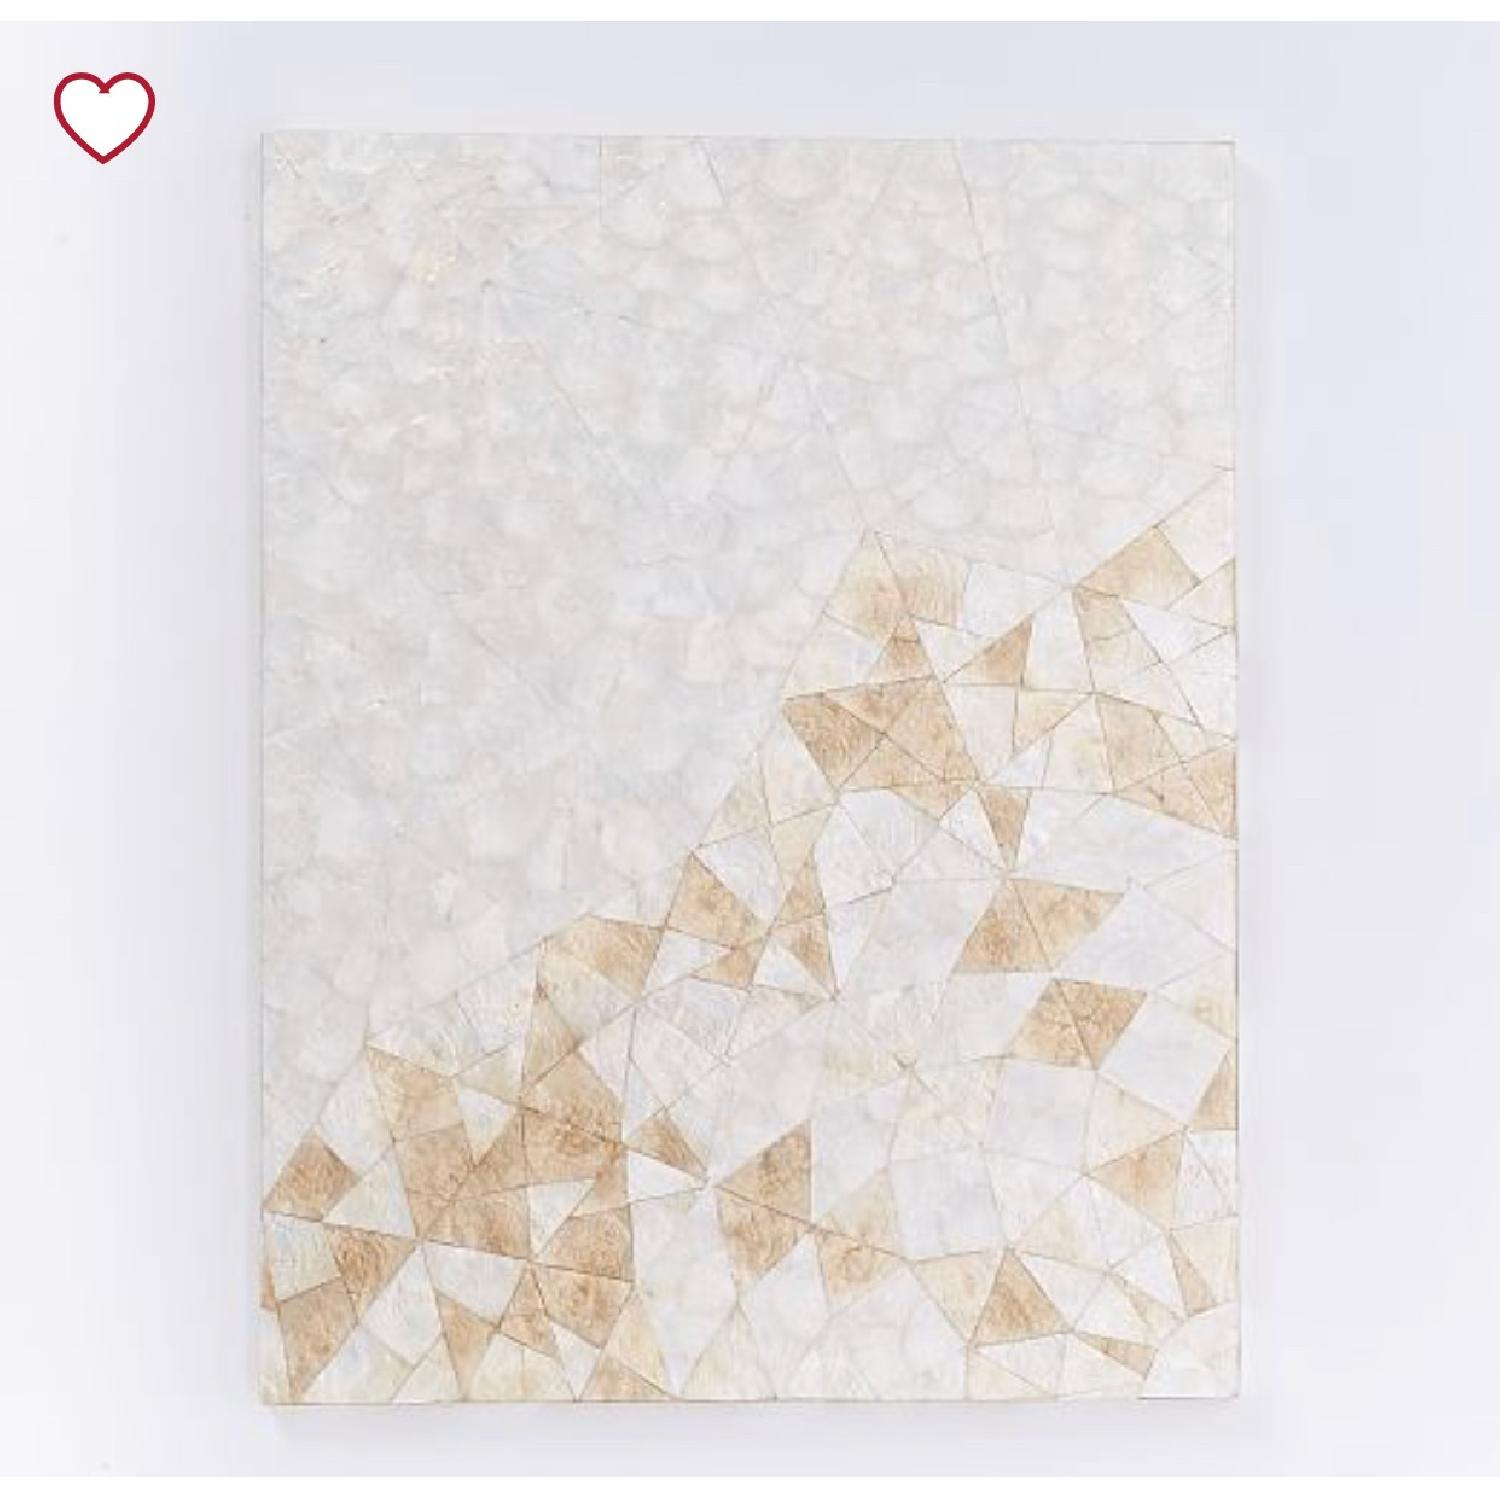 West Elm Capiz Wall Art - Crystal Formation-2